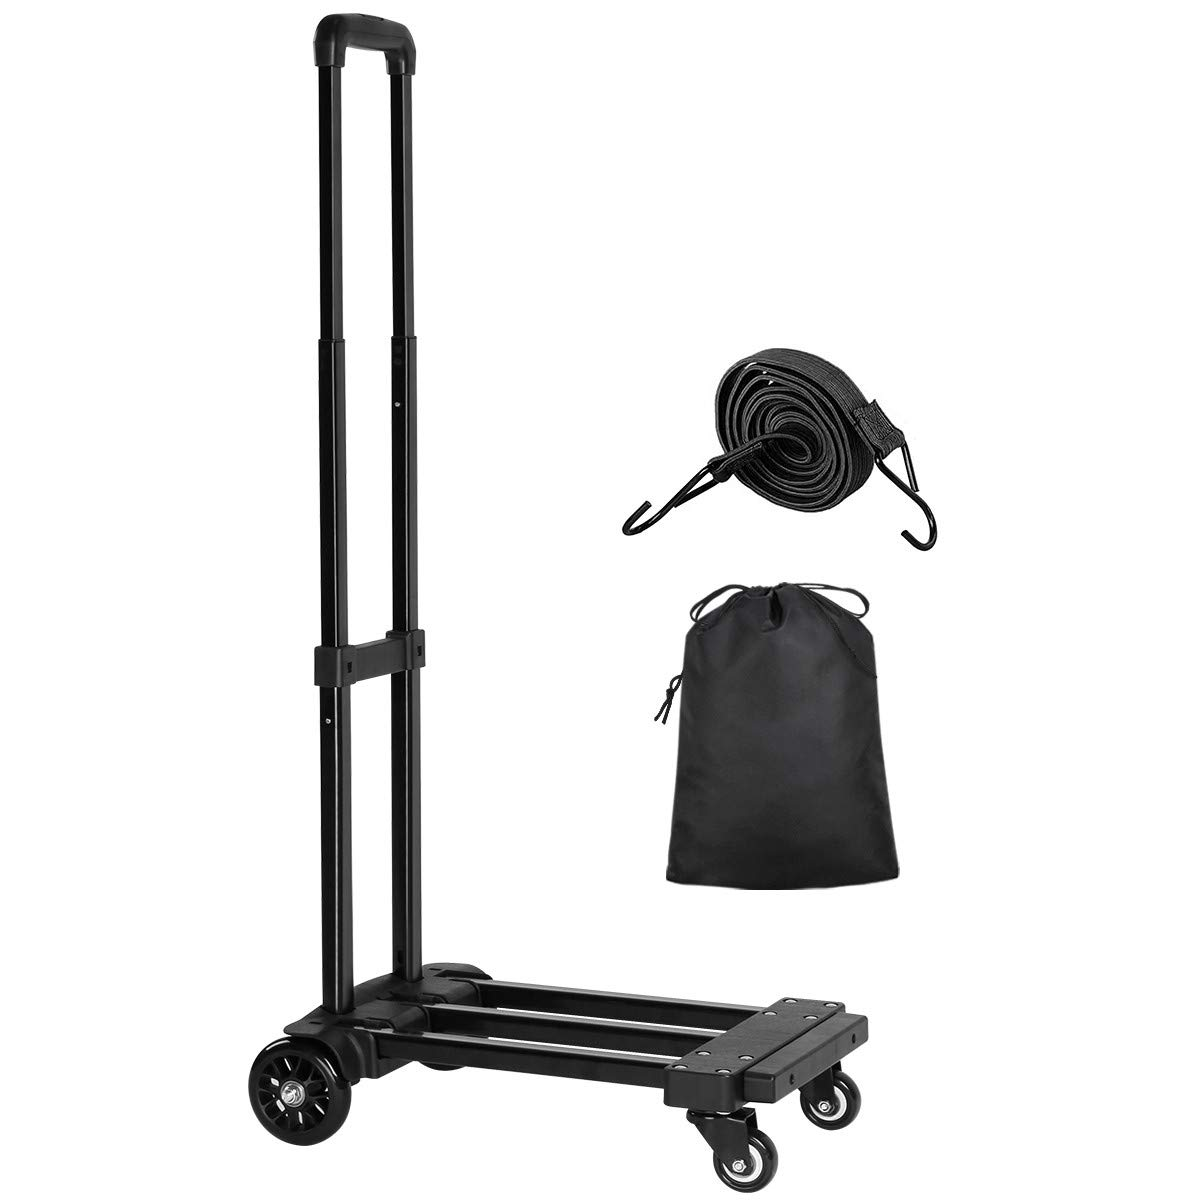 KEDSUM Folding Hand Truck, 155 lbs Heavy Duty Luggage Cart, 4 Wheels Solid Construction, Portable Fold Up Dolly, Compact and Lightweight for Luggage, Personal, Travel, Moving and Office Use by KEDSUM